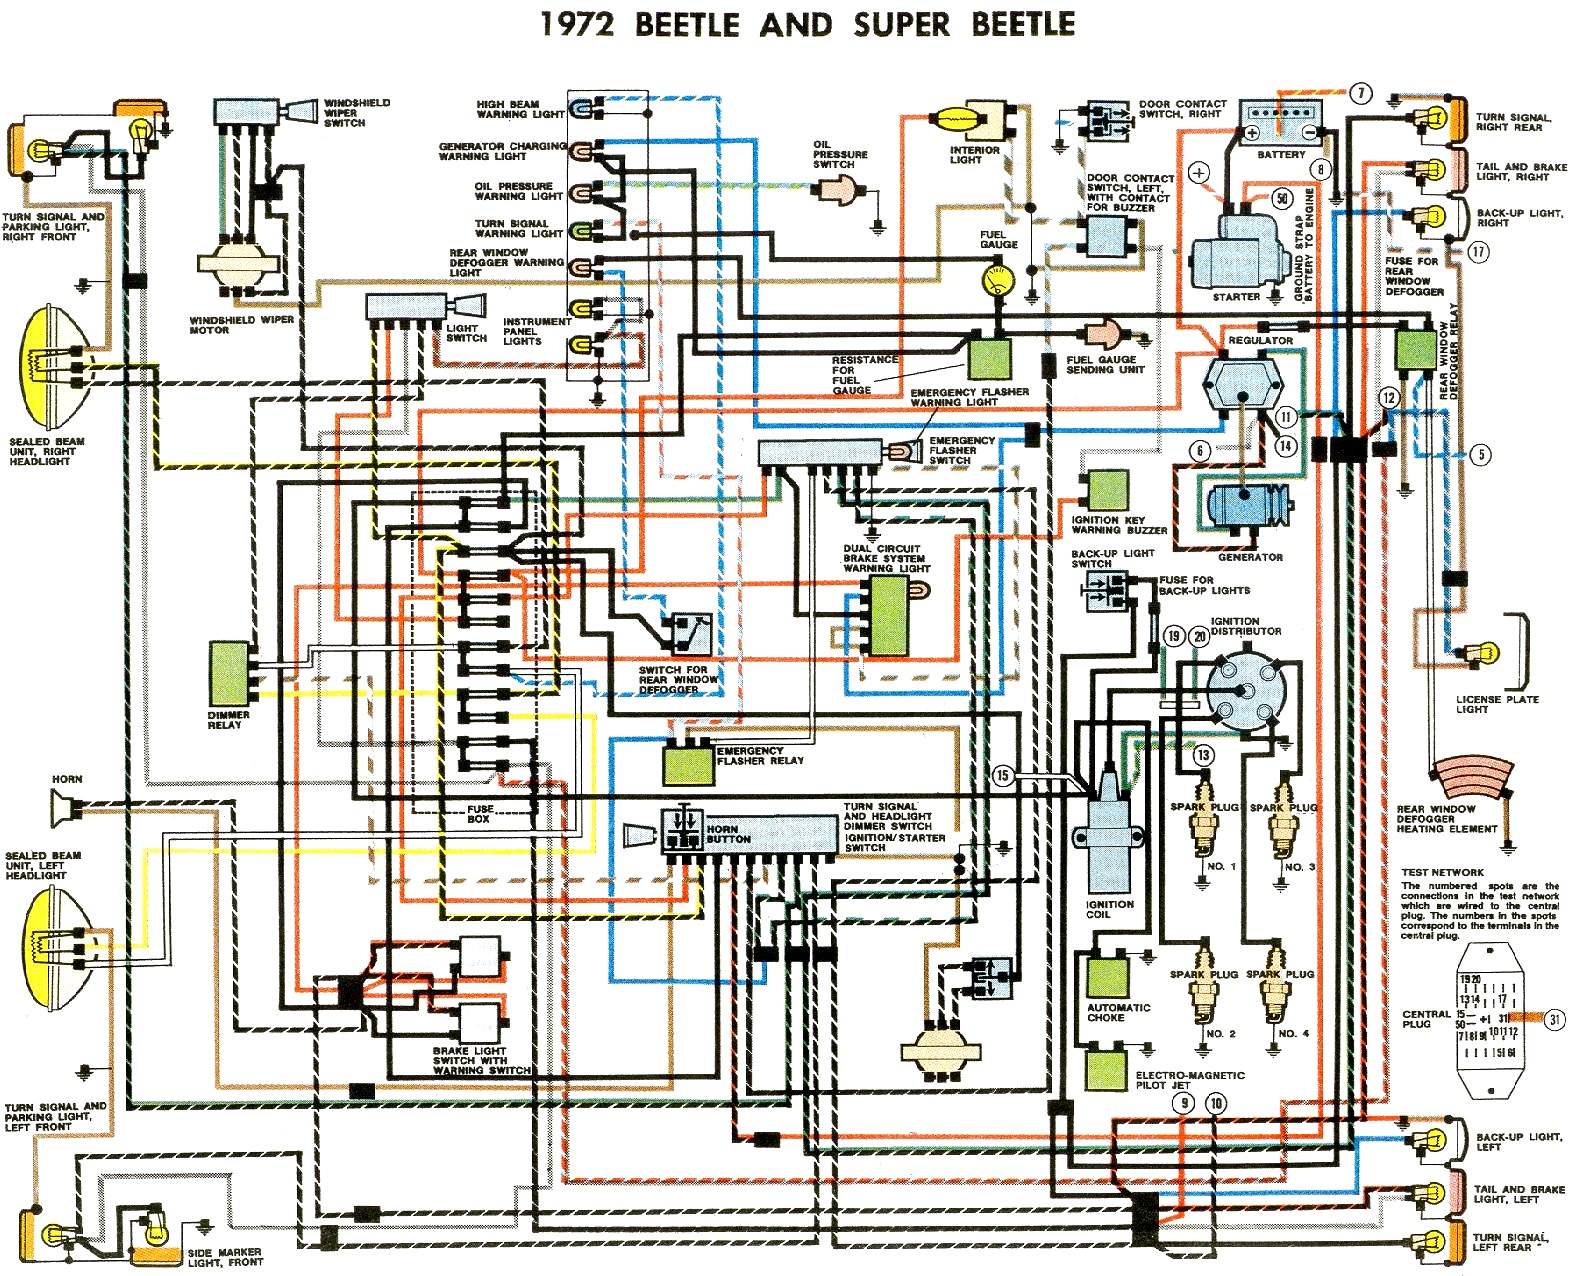 bug_72 72 vw beetle wiring diagram 2001 vw alternator wire diagram \u2022 free 1964 VW Beetle Wiring Diagram at creativeand.co